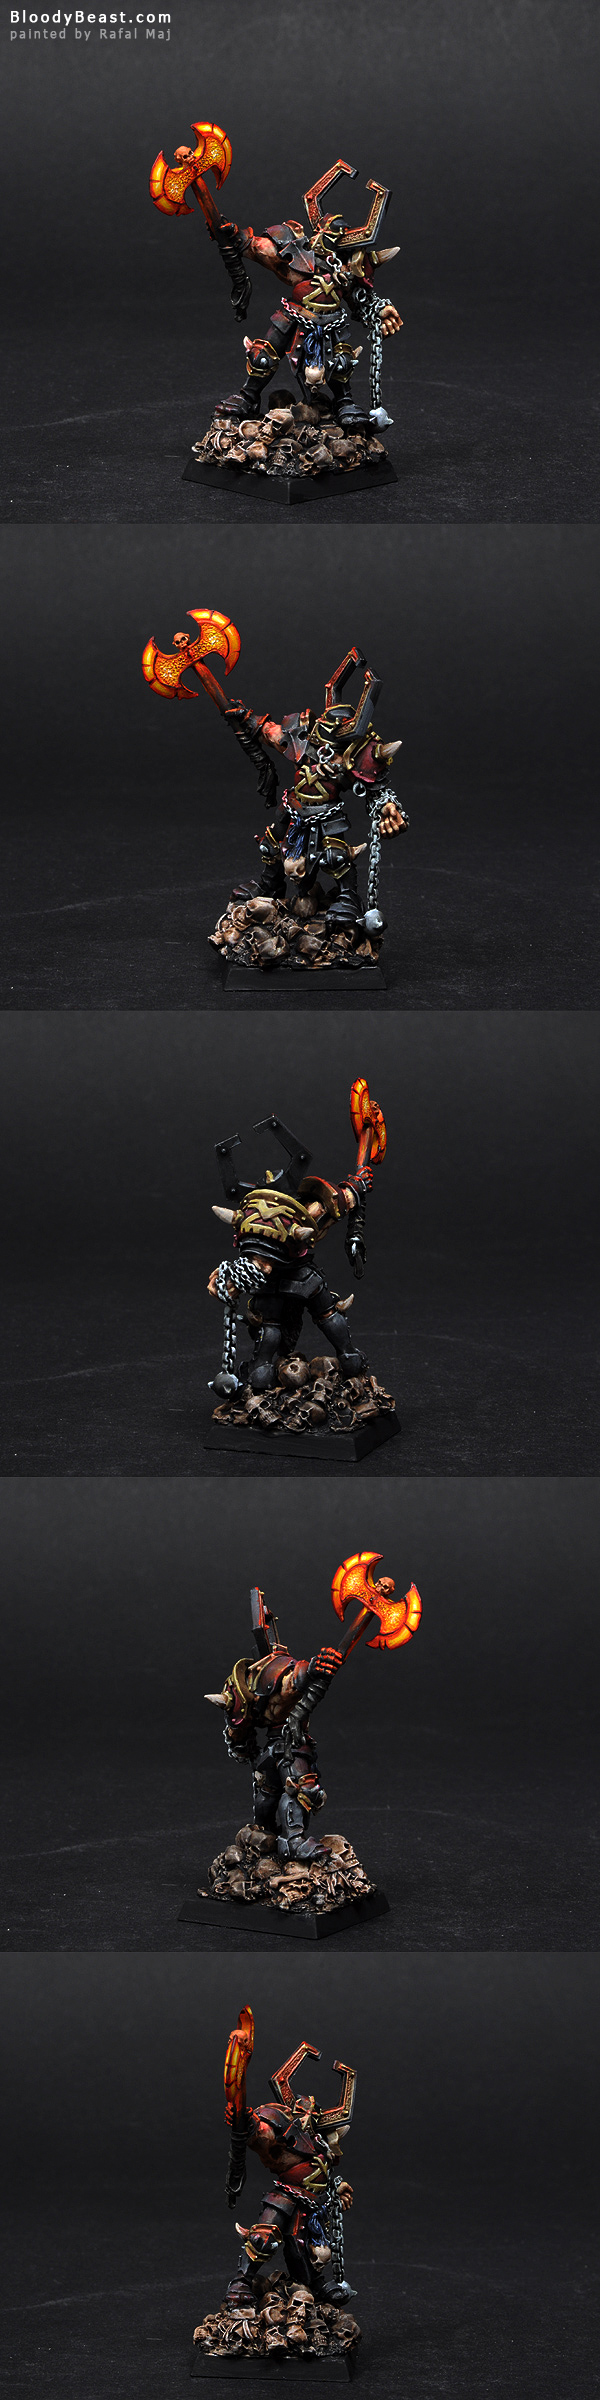 Chaos Lord of Khorne painted by Rafal Maj (BloodyBeast.com)